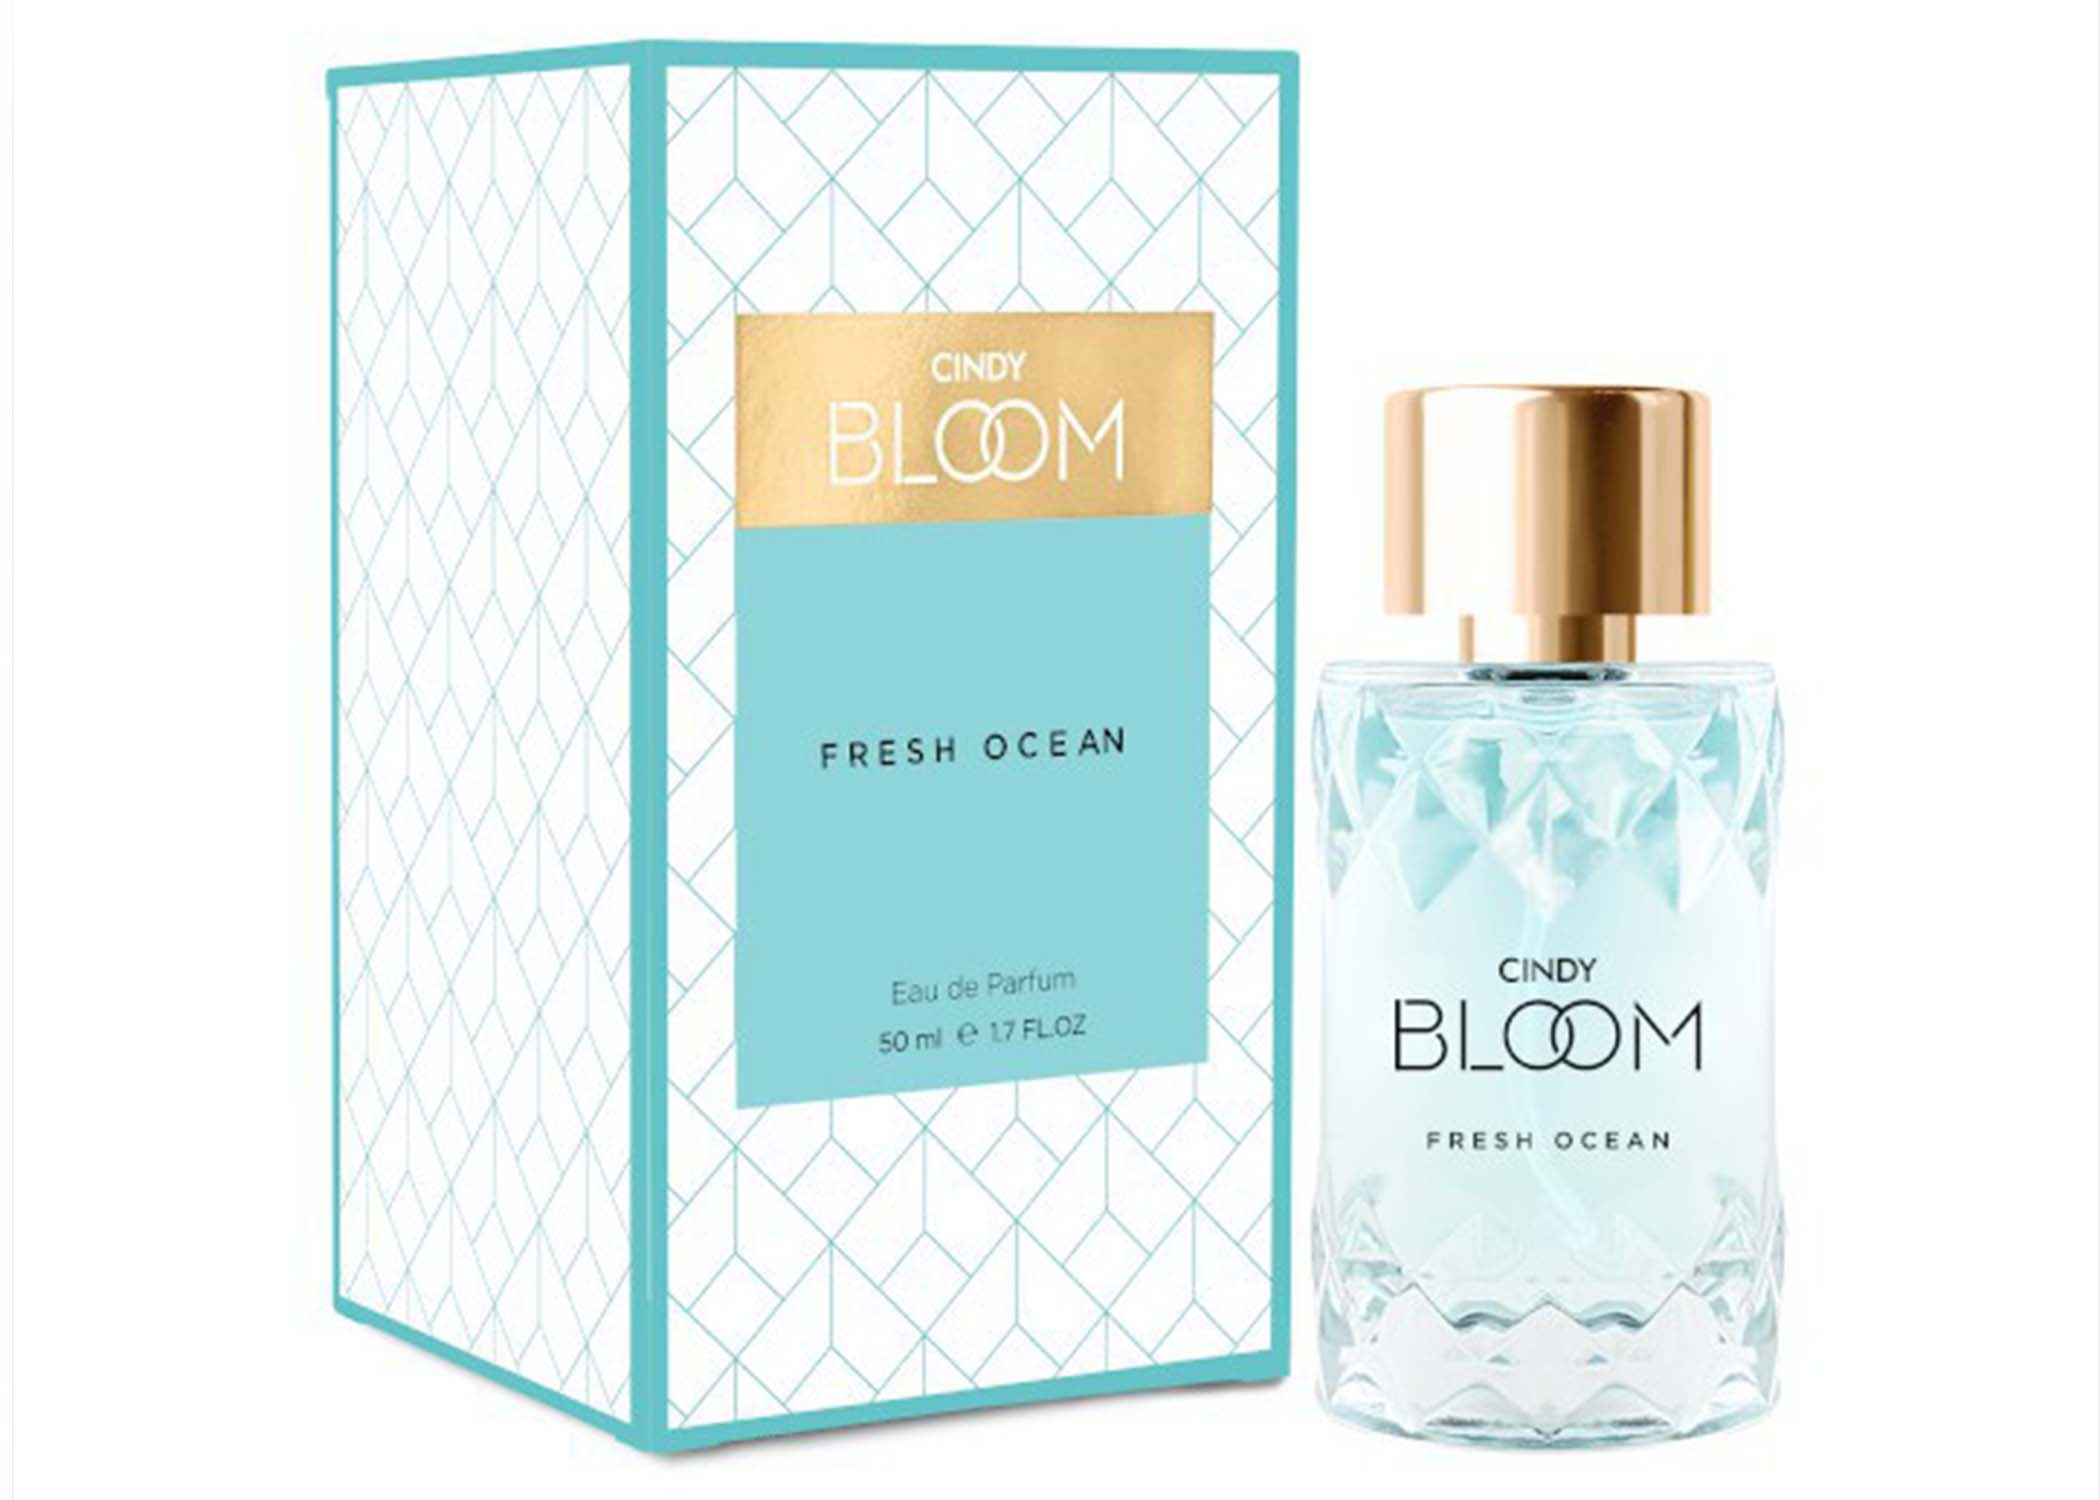 Nuoc-Hoa-Cindy-Bloom-Fresh-Ocean-50ml-chinh-hang